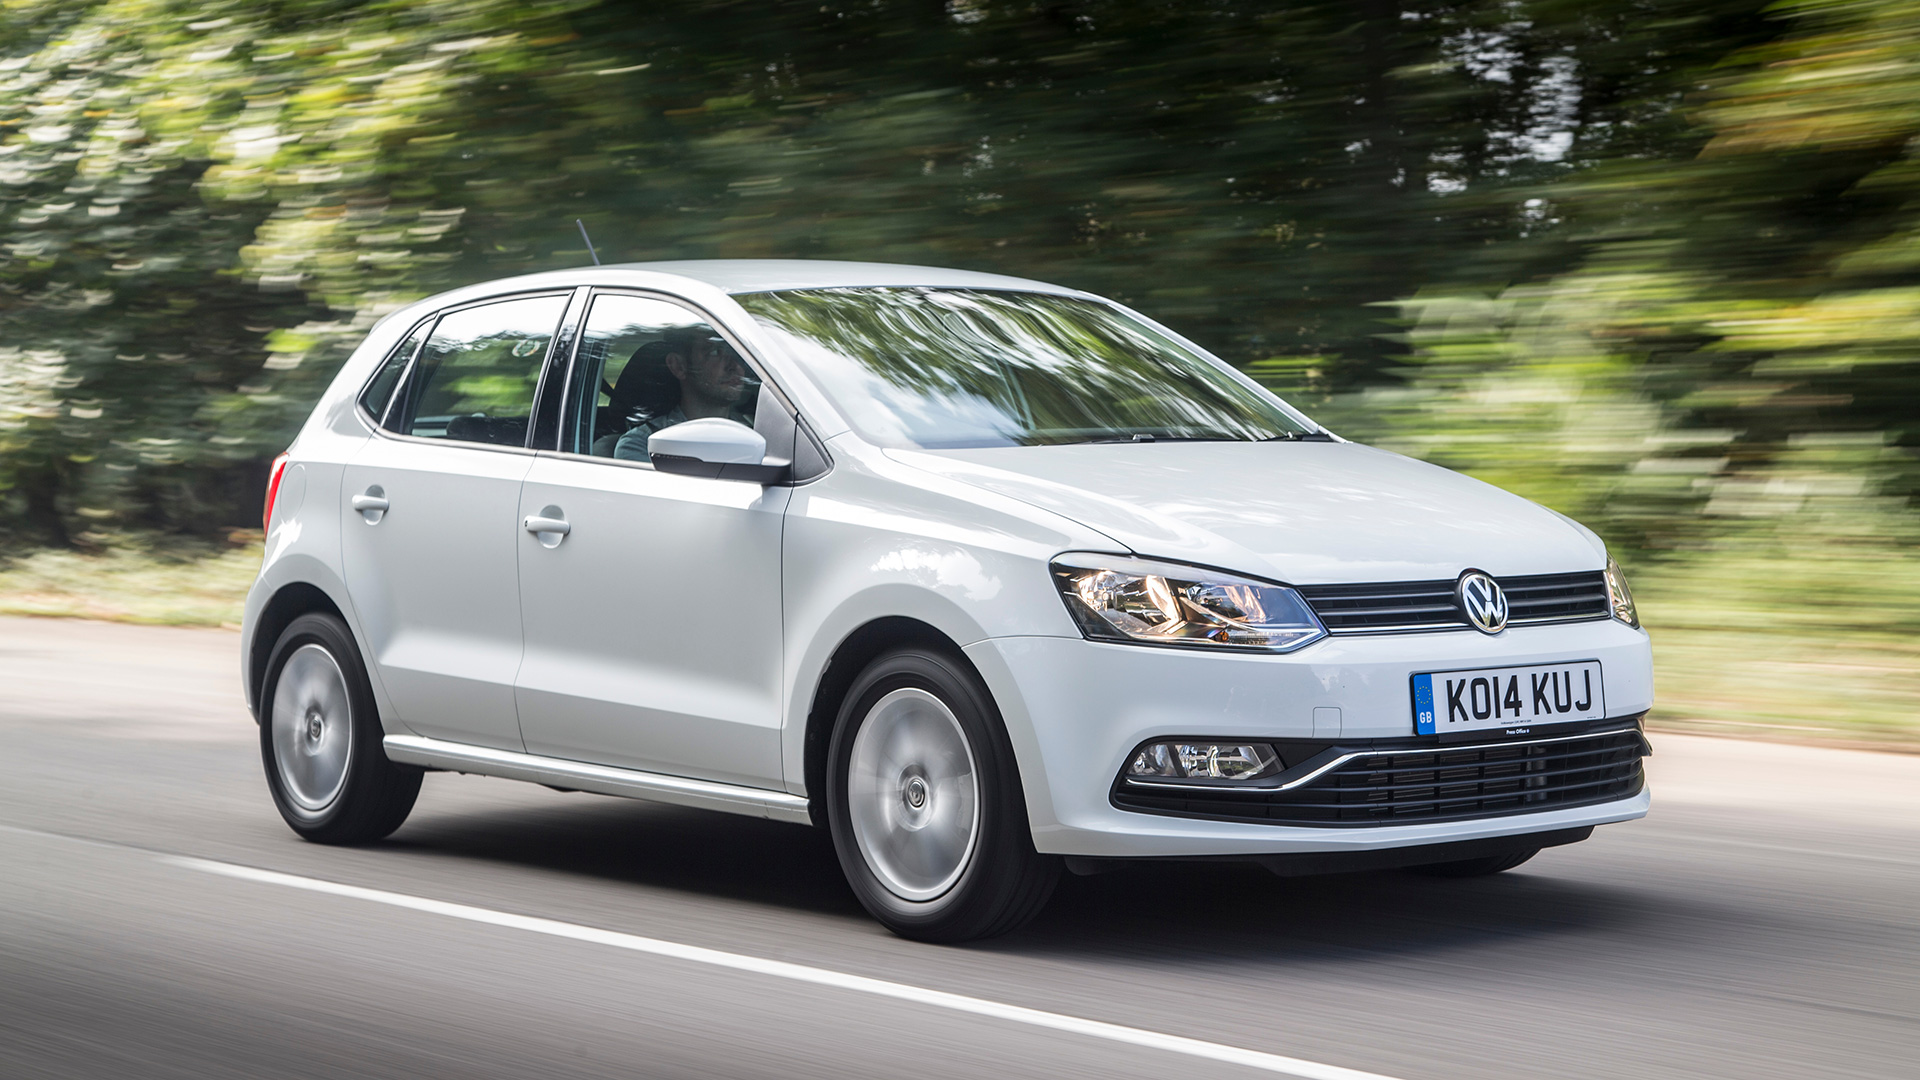 Volkswagen polo volkswagen car from united kingdom - Browse The Range